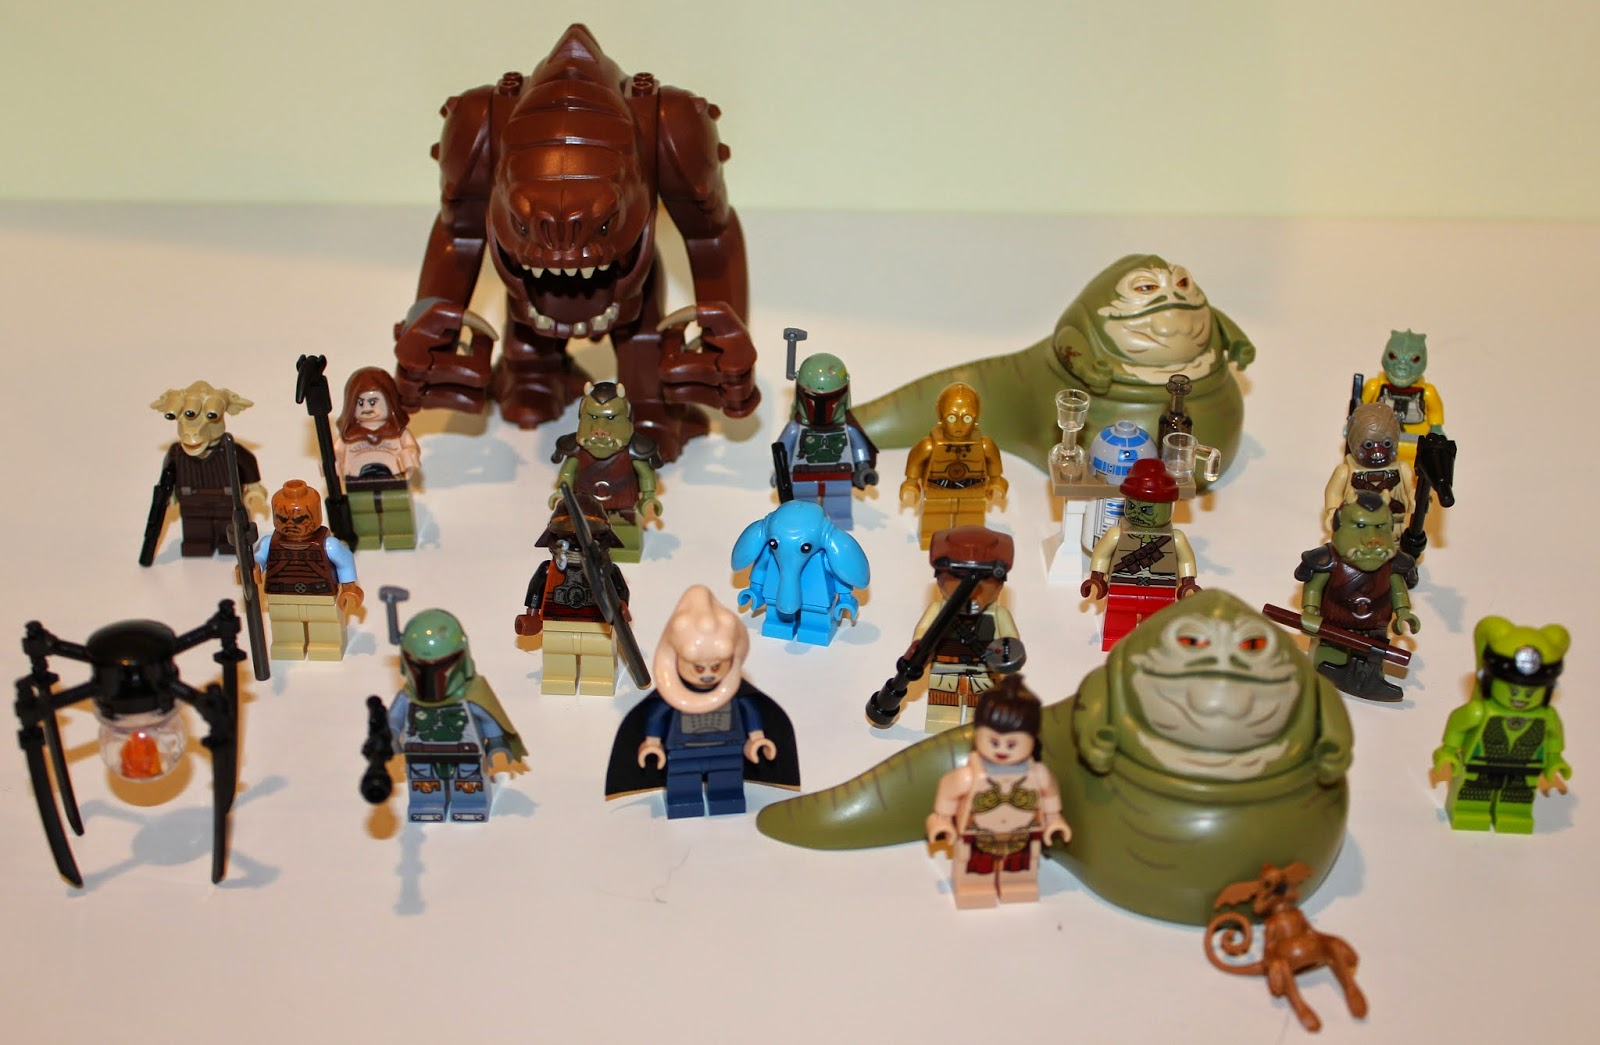 Sons Of Twilight Lego Star Wars Scum And Villiany Minifigures